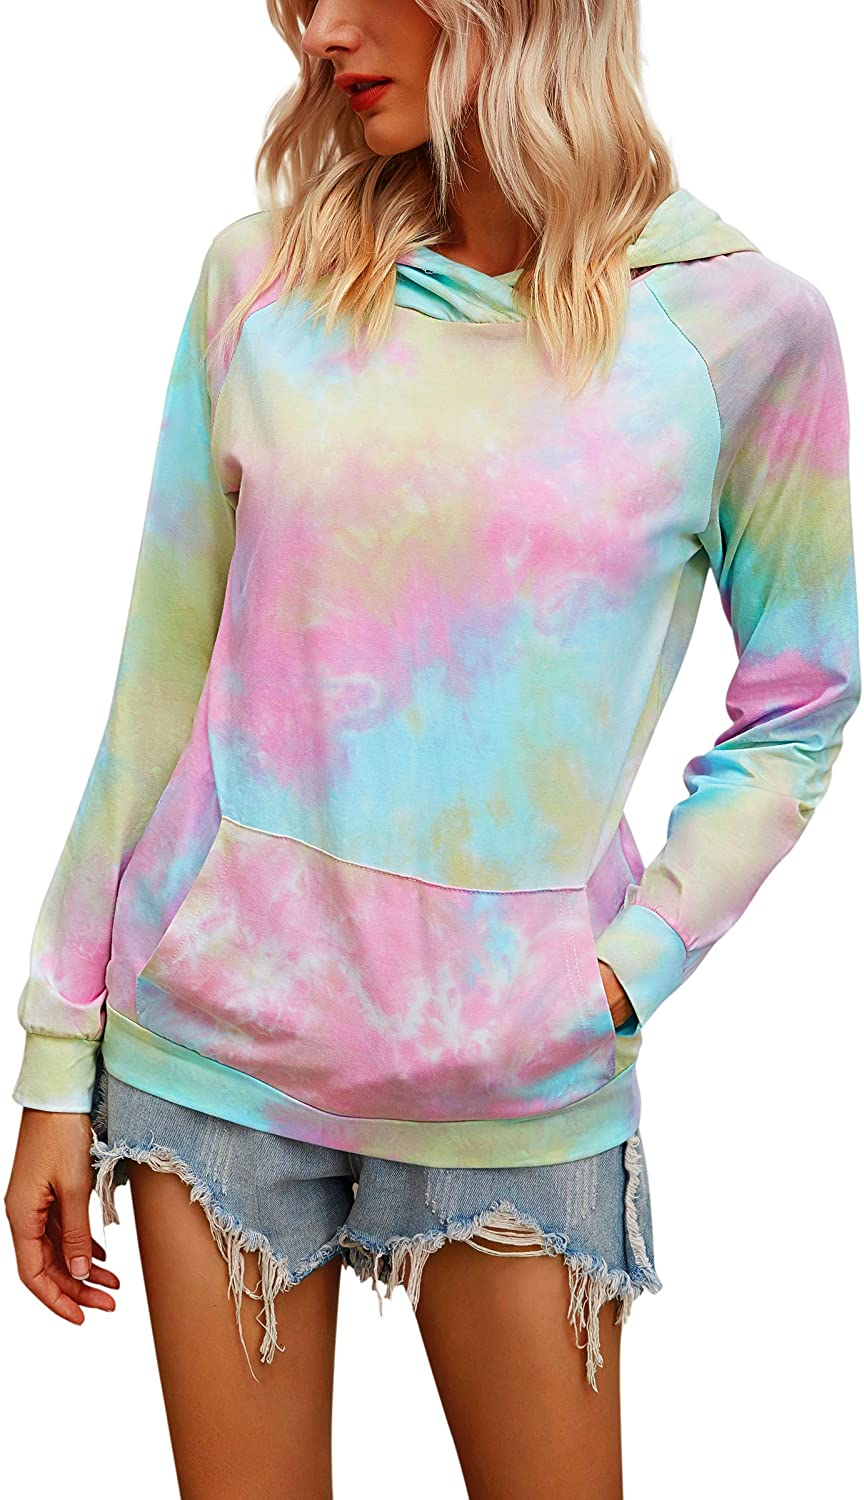 Hibluco Womens Casual Floral Printed Hoodie Pullover Sweatshirts with Pockets